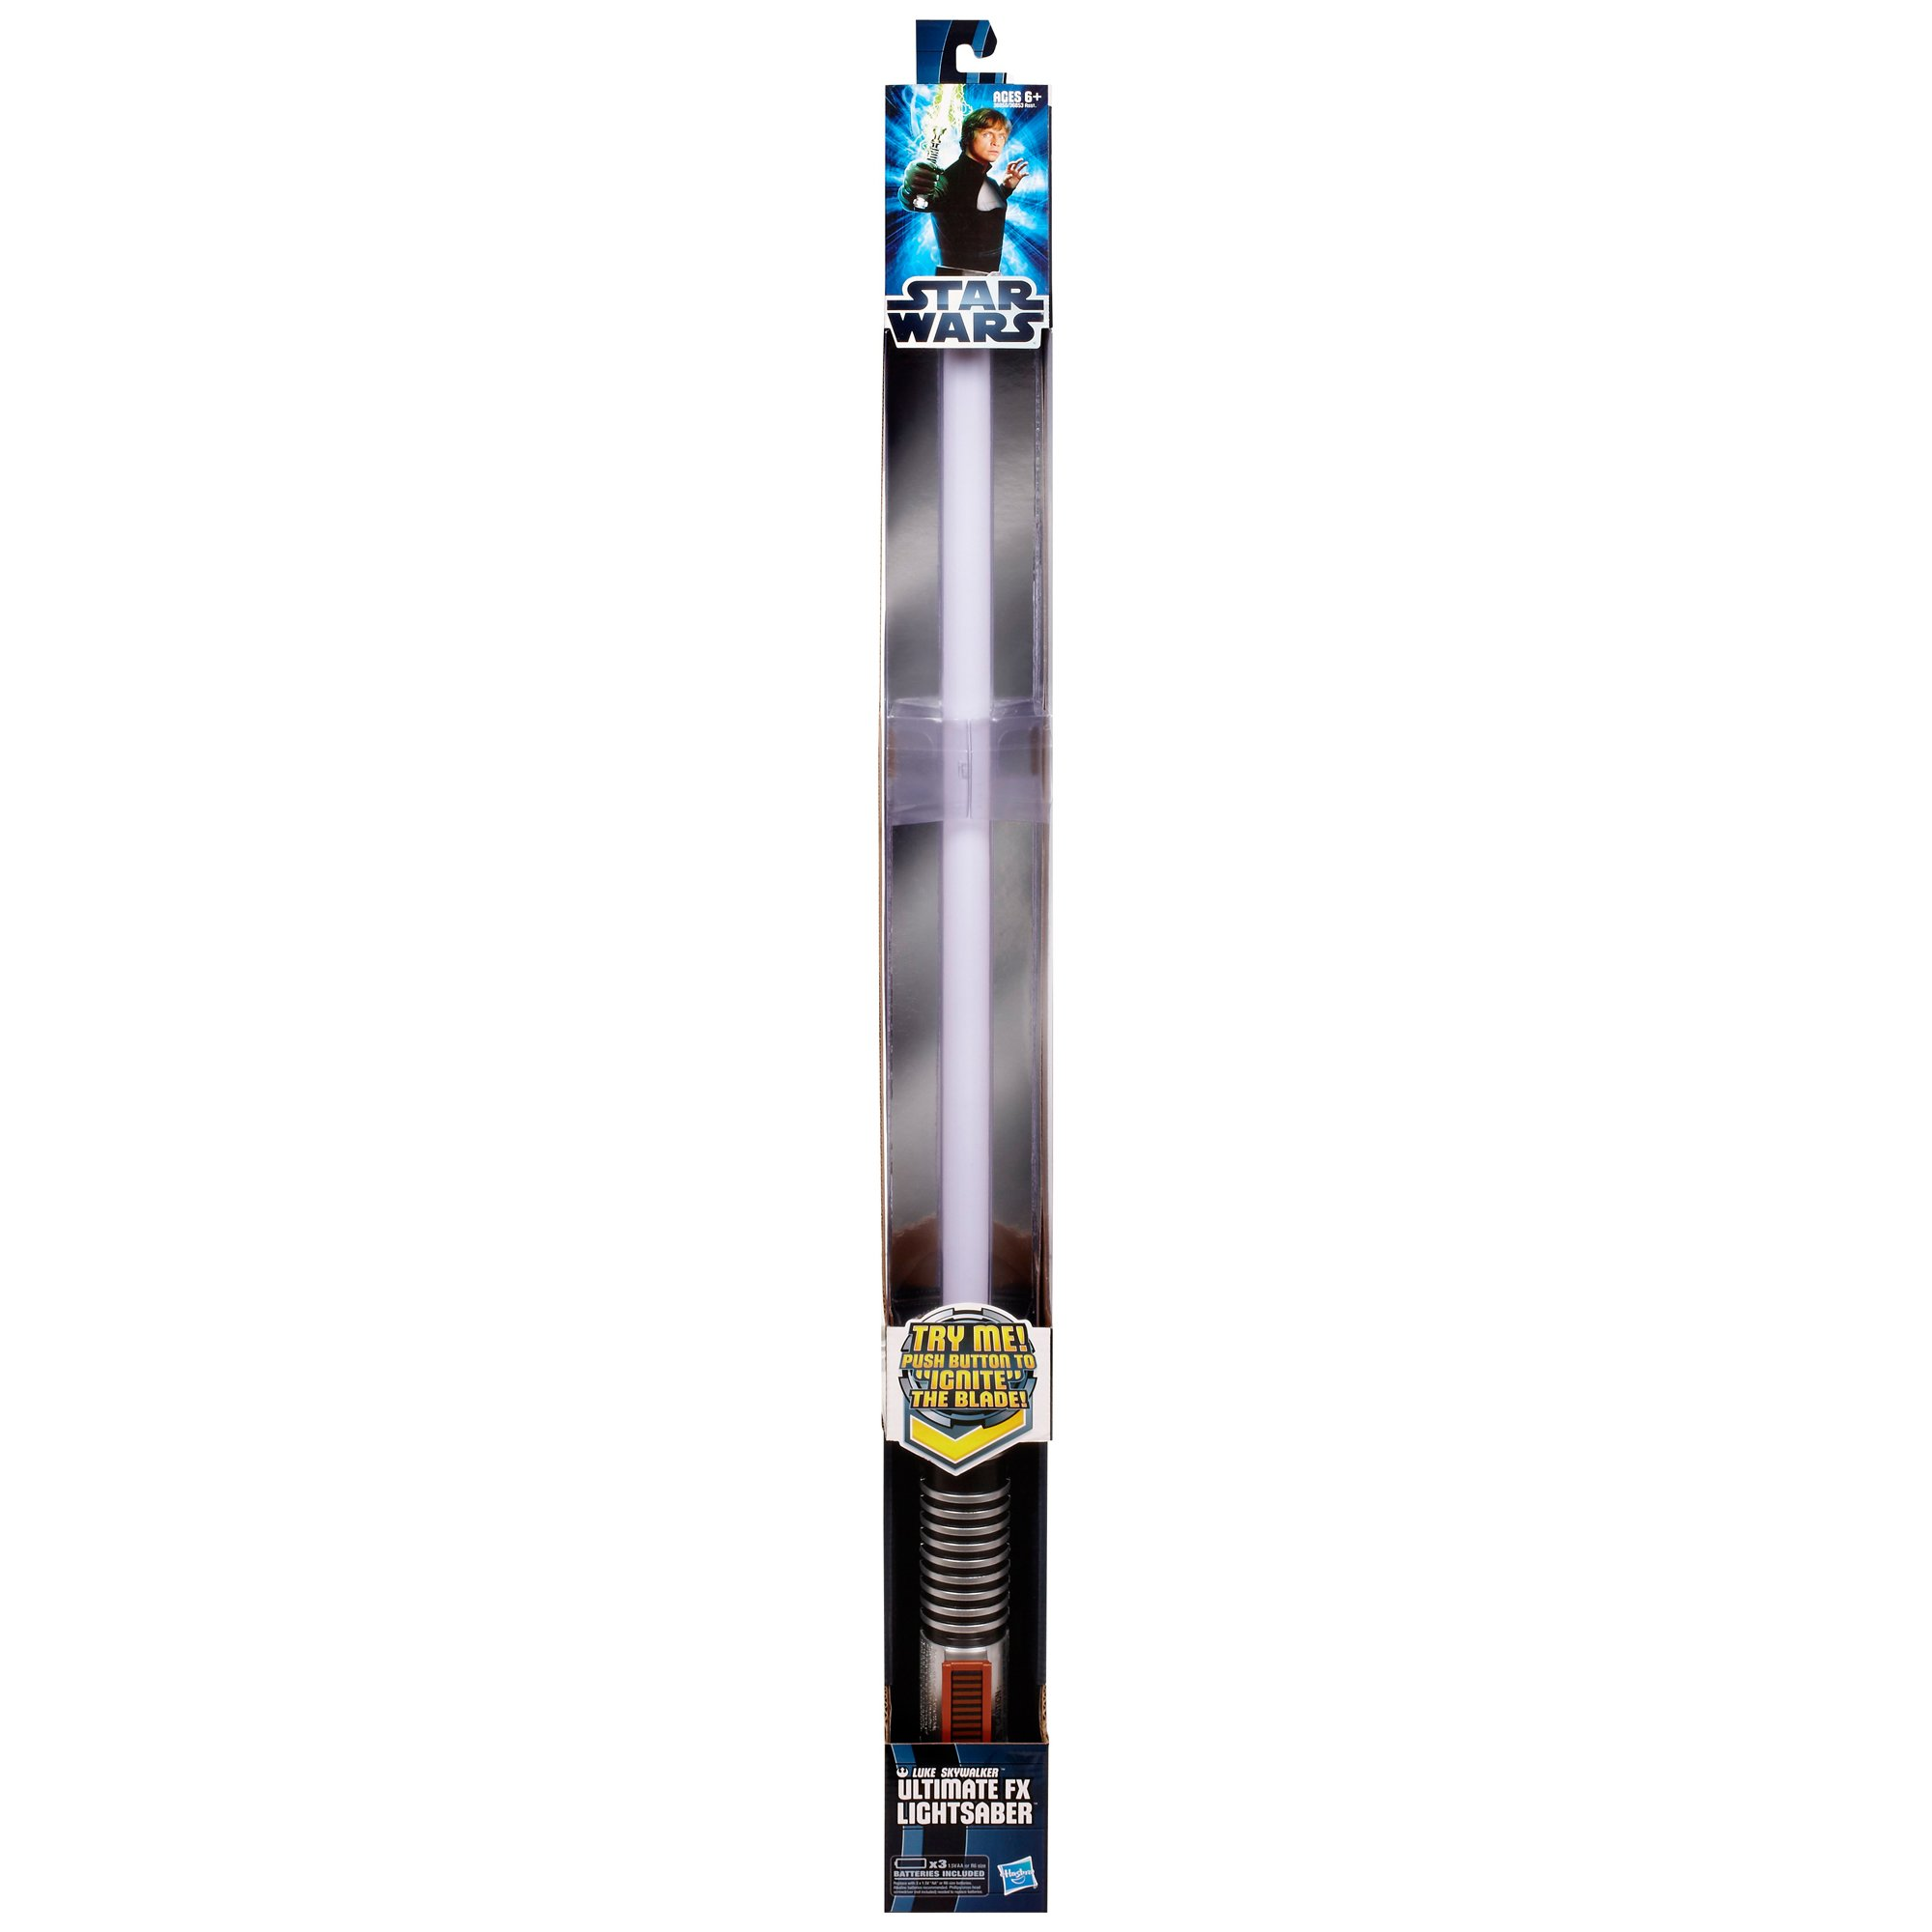 Star Wars Ultimate FX Luke Sky Walker Green Lightsaber by Star Wars (Image #3)